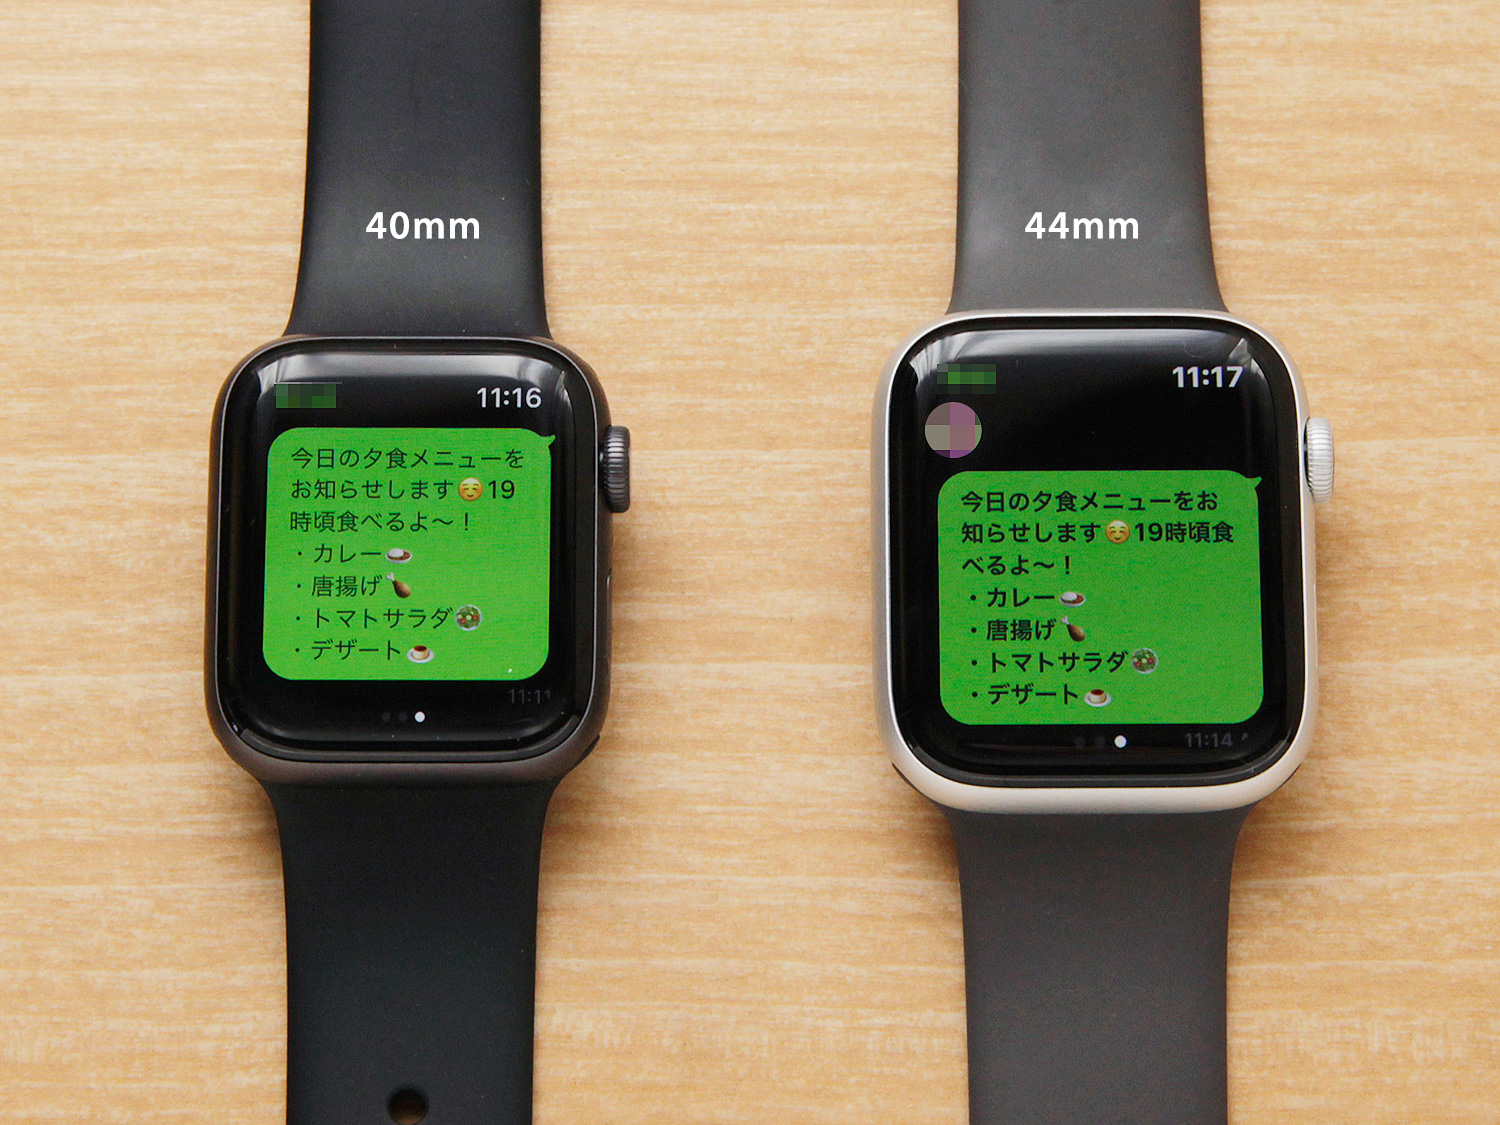 Apple Watch Seires 4の40mmと44mmサイズ比較(LINE)